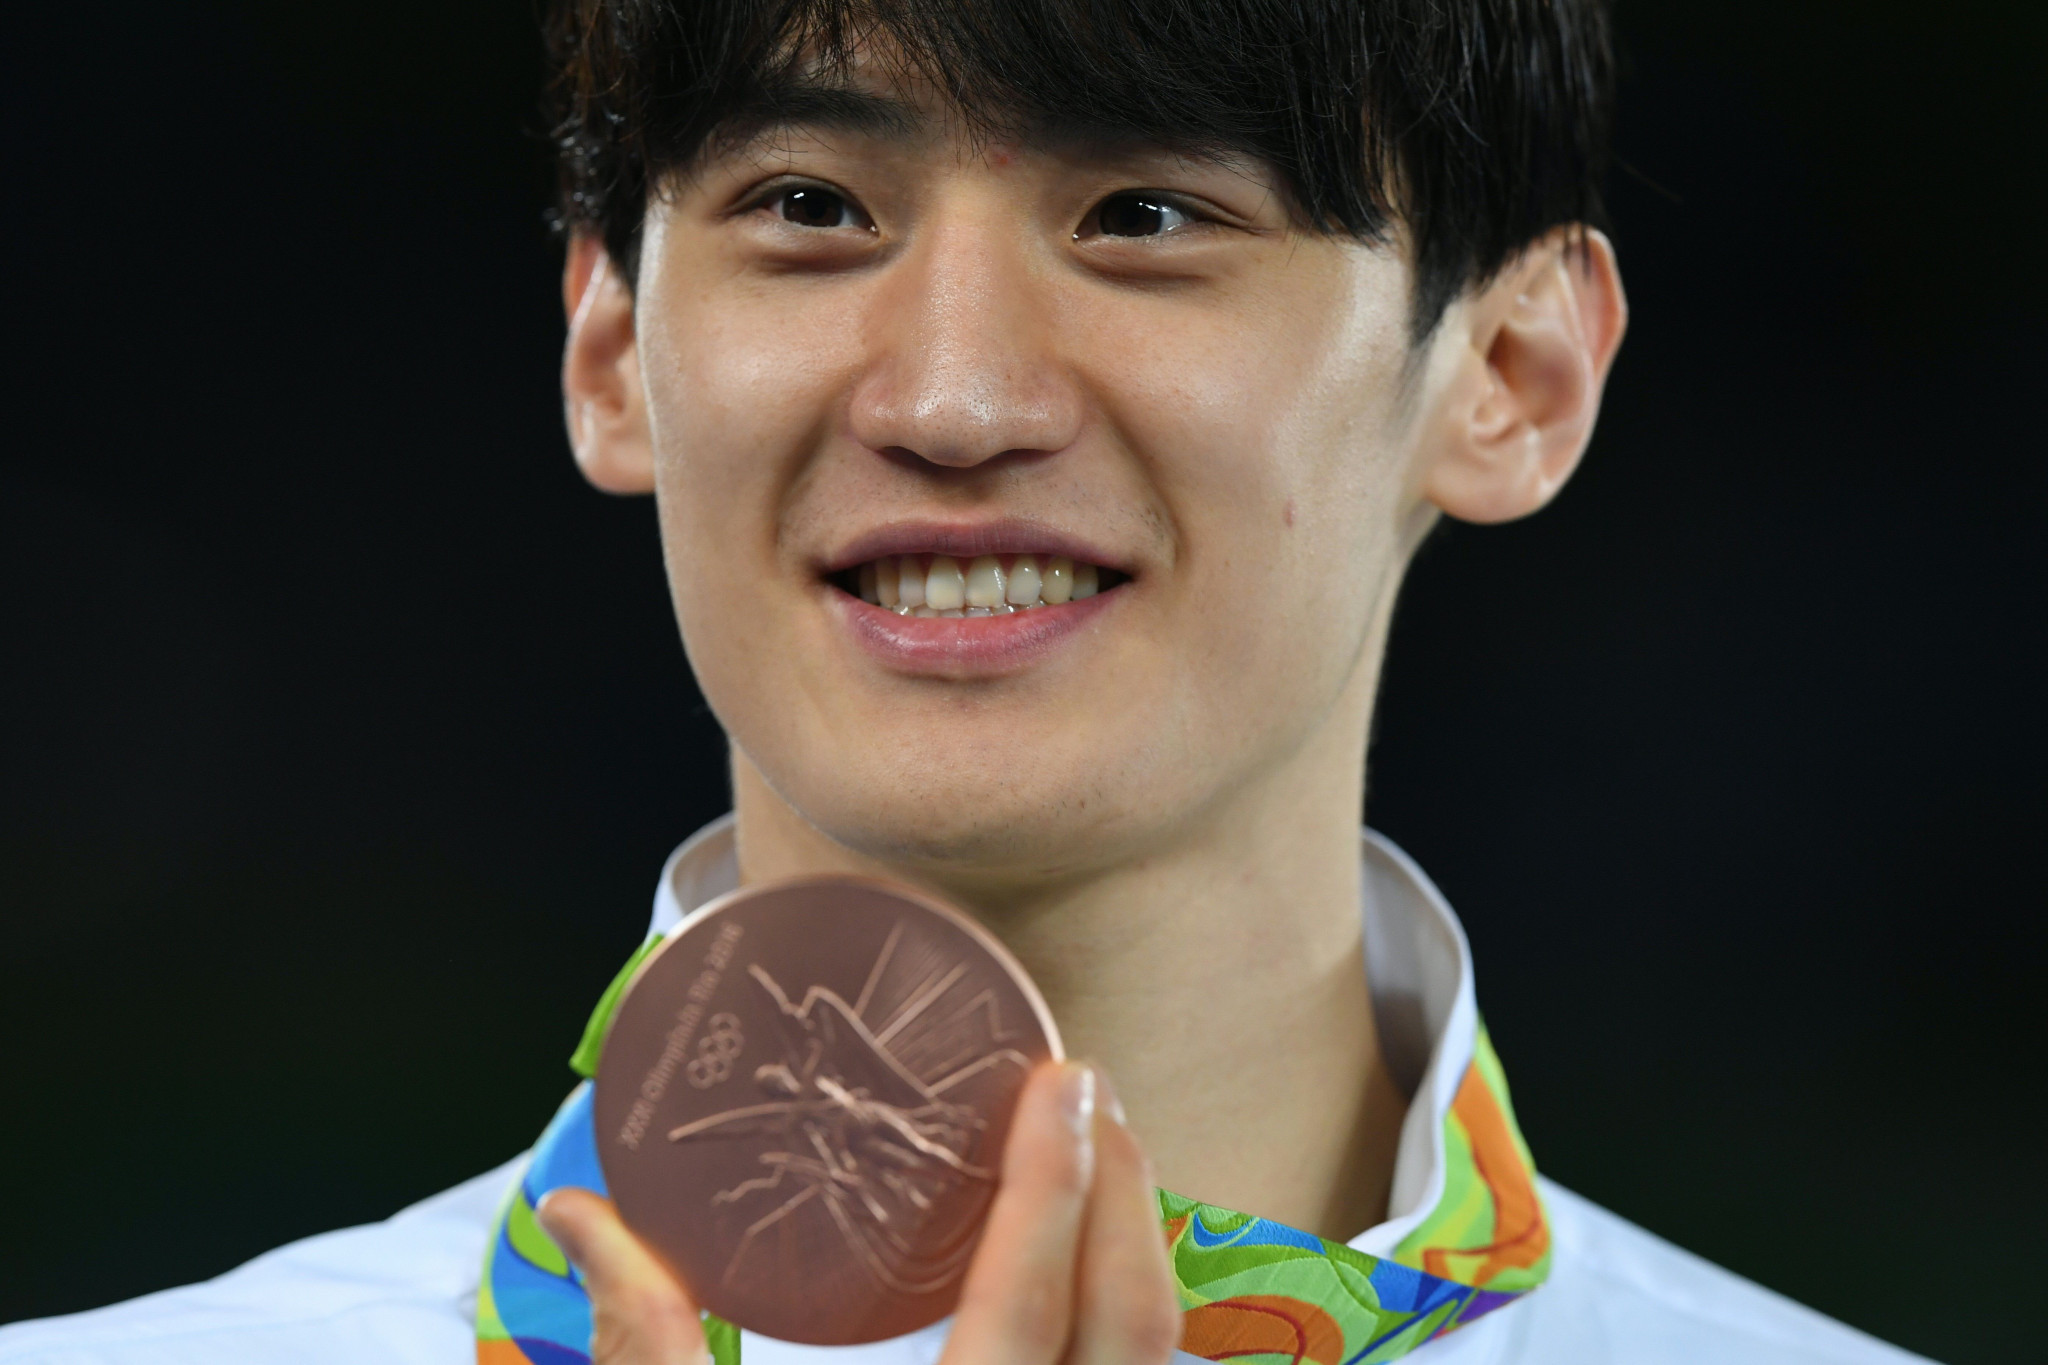 After winning silver and bronze, Dae-hoon Lee has his sights set on Olympic gold ©Getty Images